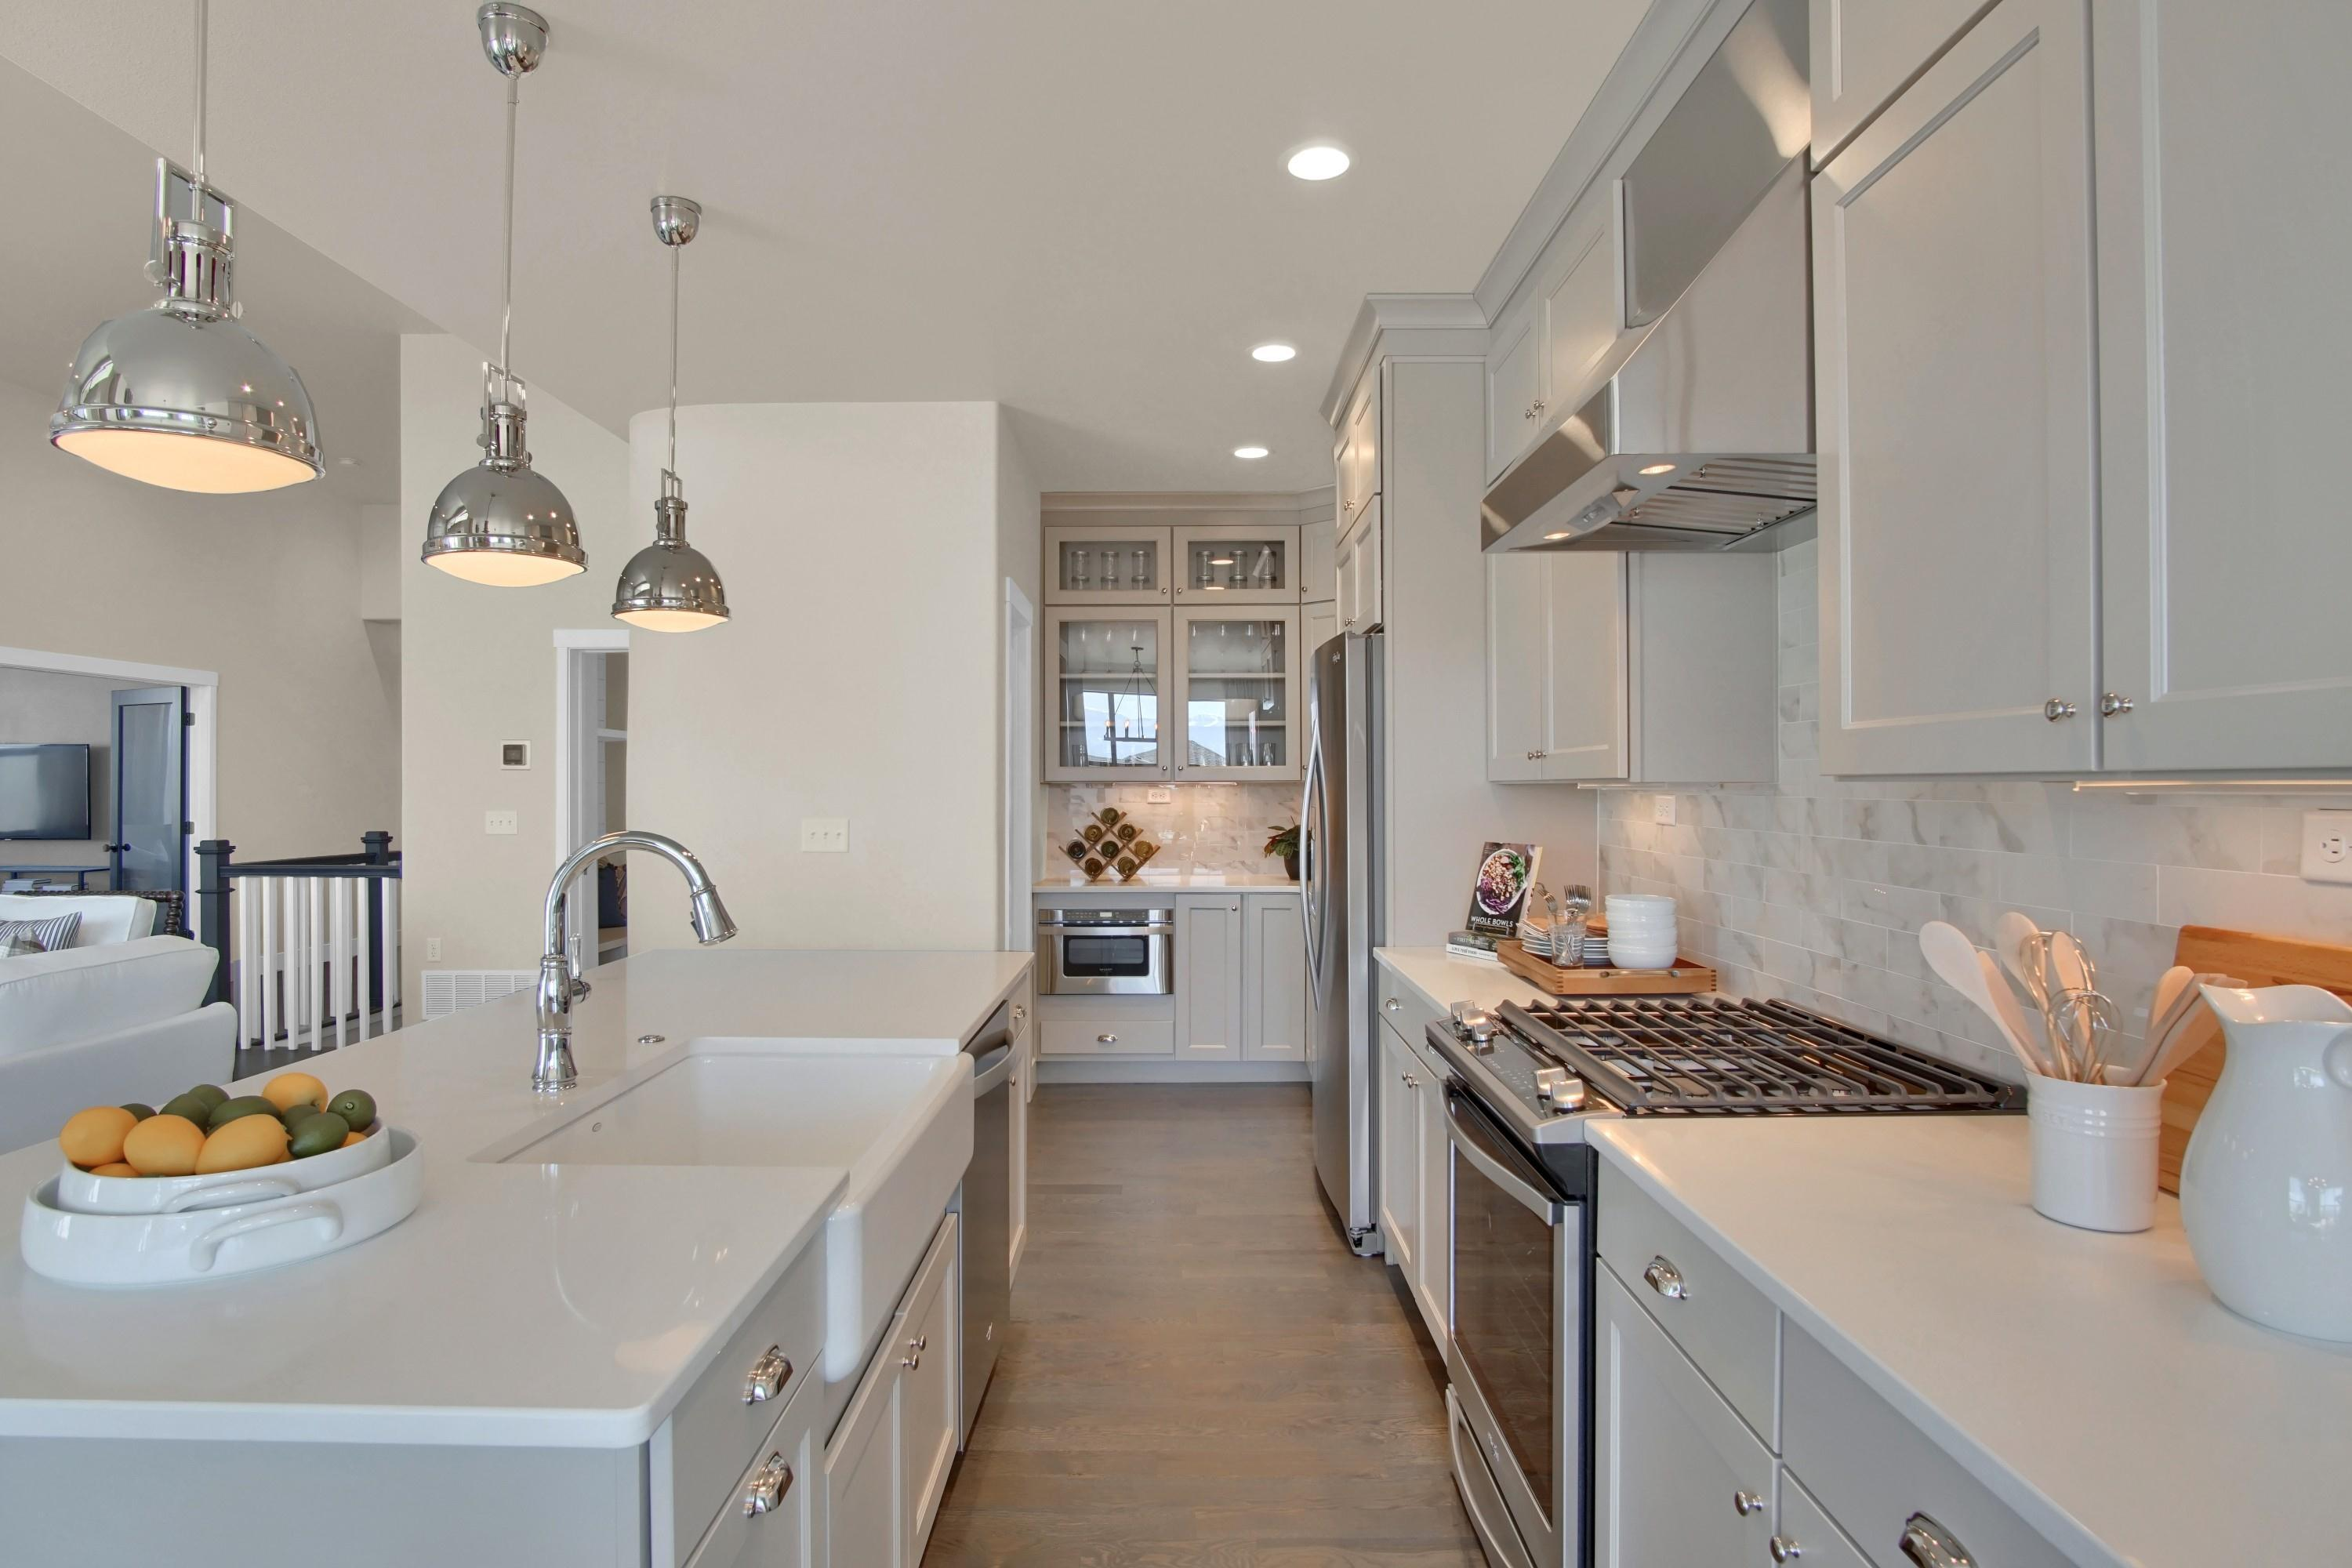 Kitchen featured in the Mackintosh By Keller Homes in Colorado Springs, CO